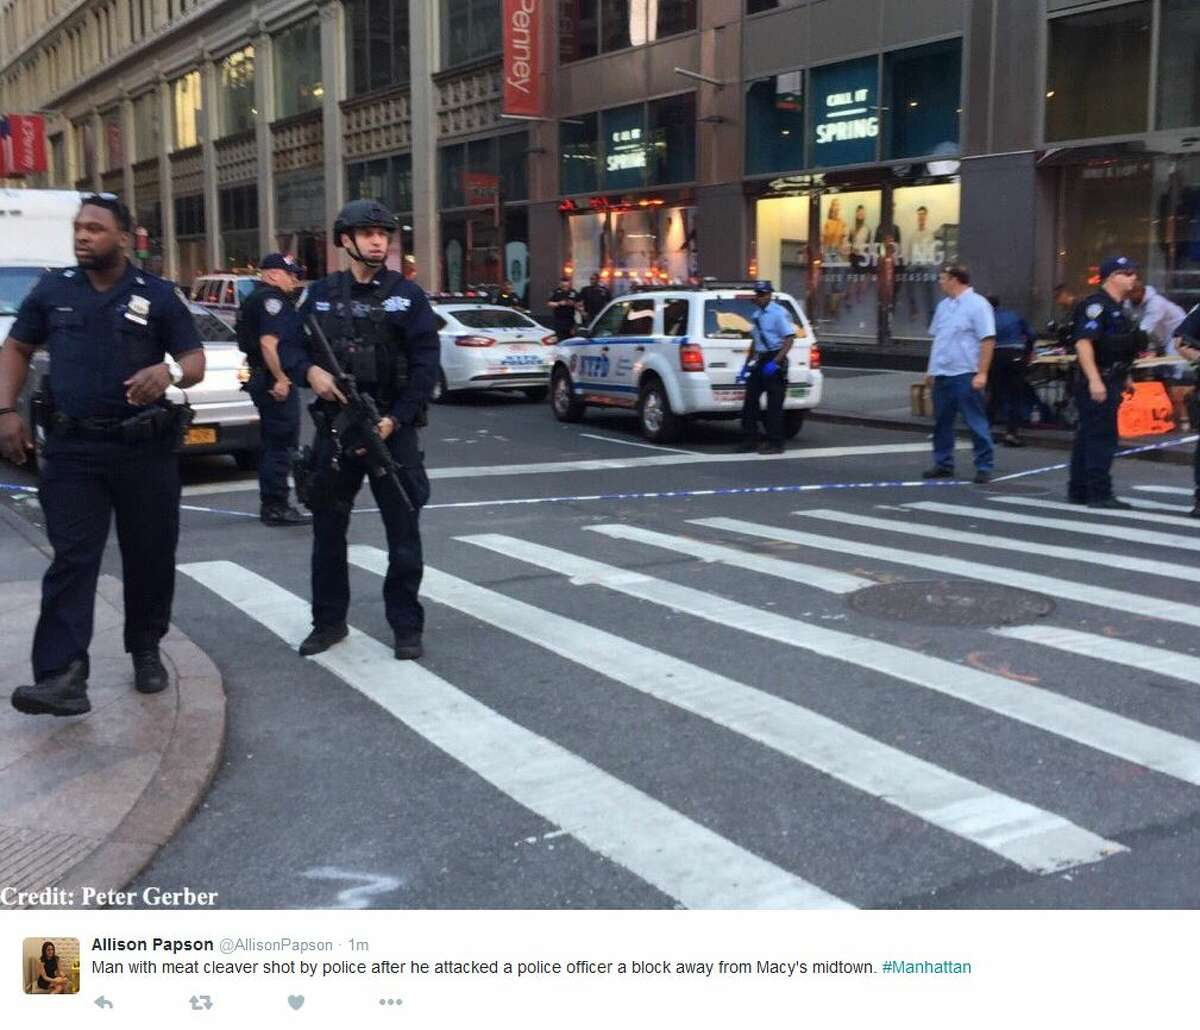 Allison Papson ‏@AllisonPapson 1m1 minute ago Man with meat cleaver shot by police after he attacked a police officer a block away from Macy's midtown. #Manhattan